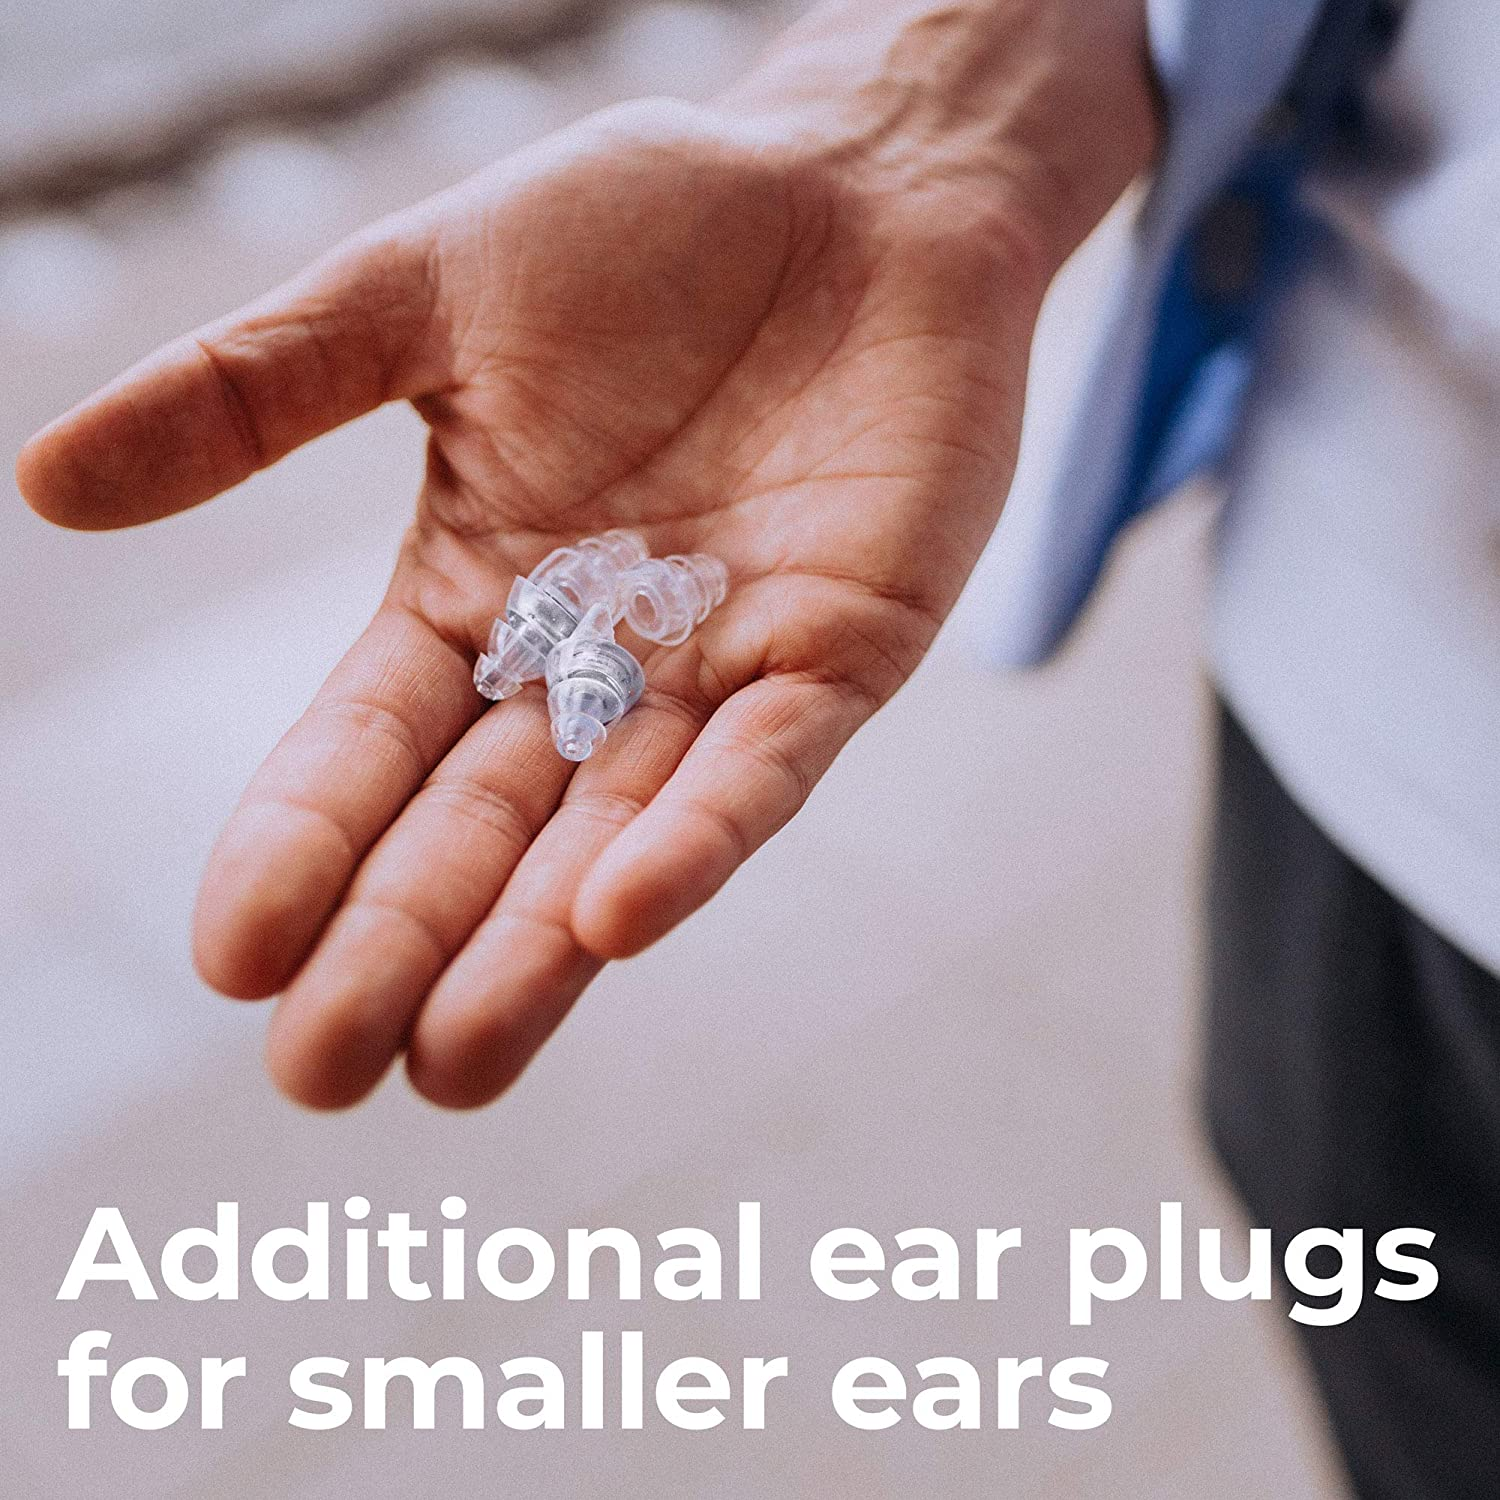 festivals SCHALLWERK/® extra strong Hearing Protection Earplugs 27 dB Strong+ 2 Extra Plugs For Small Ears Mutes Noise /& Retains Sound Quality Ideal For music work